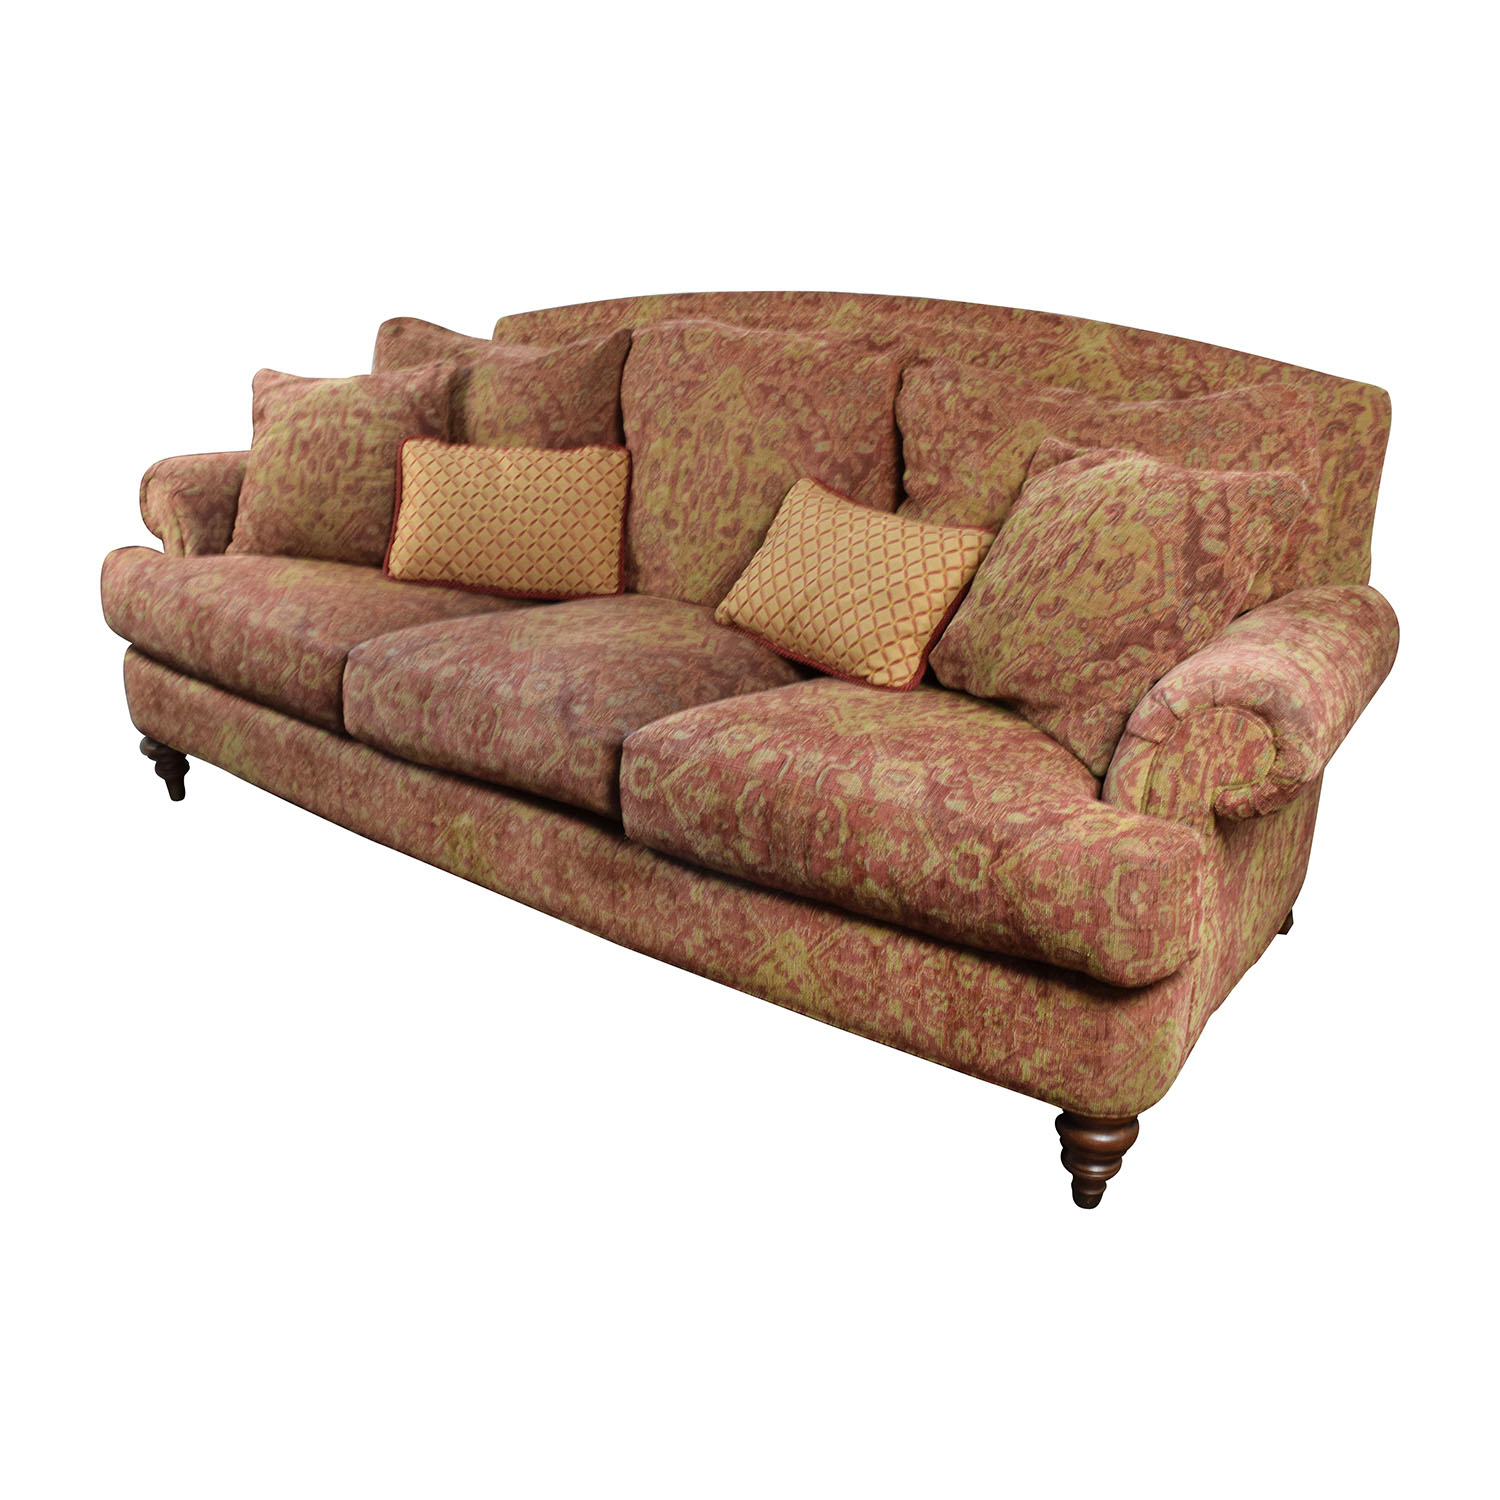 Ethan Allen Sofas Cool Paris Twocushion Sofa Ethan Allen Us With Ethan Allen Sofas Finest